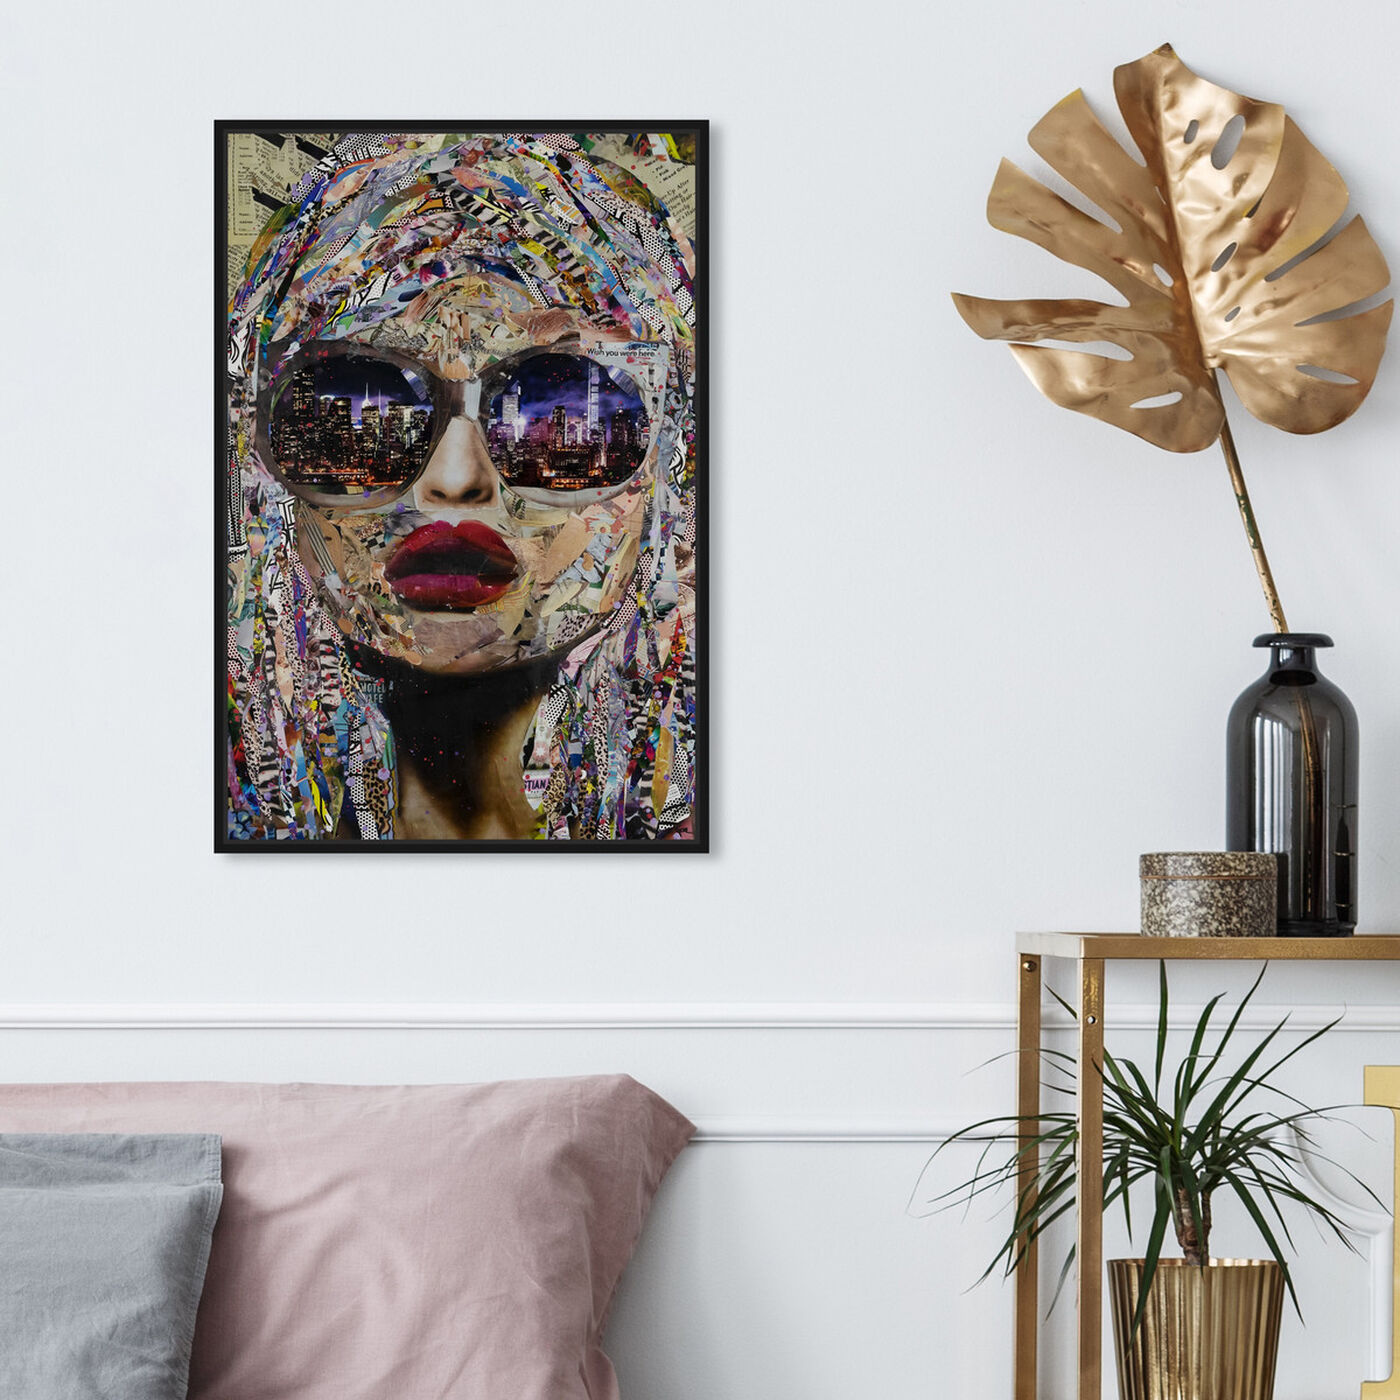 Hanging view of Katy Hirschfeld - Timing is Now featuring fashion and glam and portraits art.